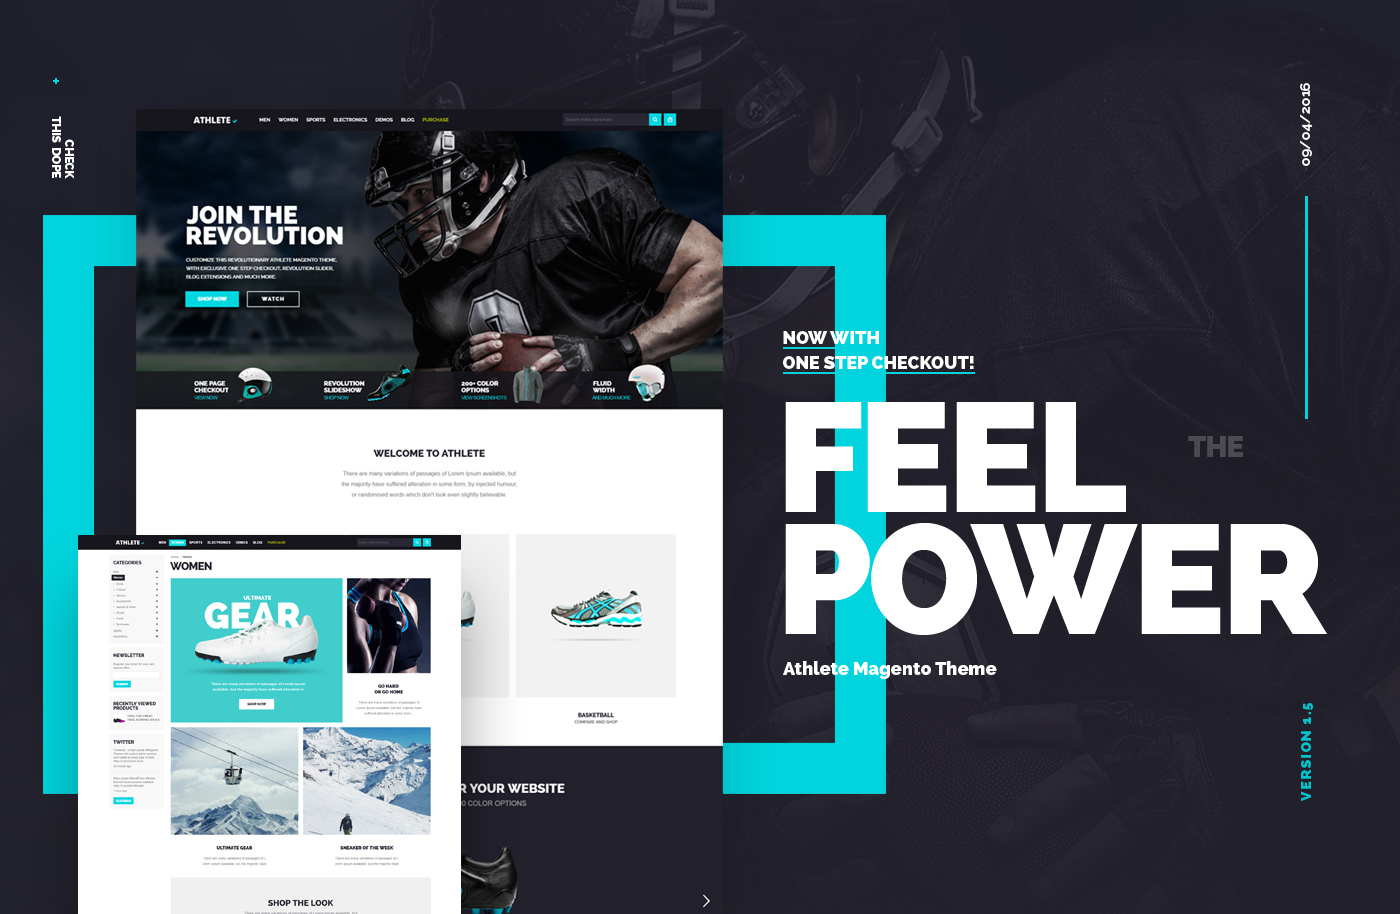 athlete magento theme